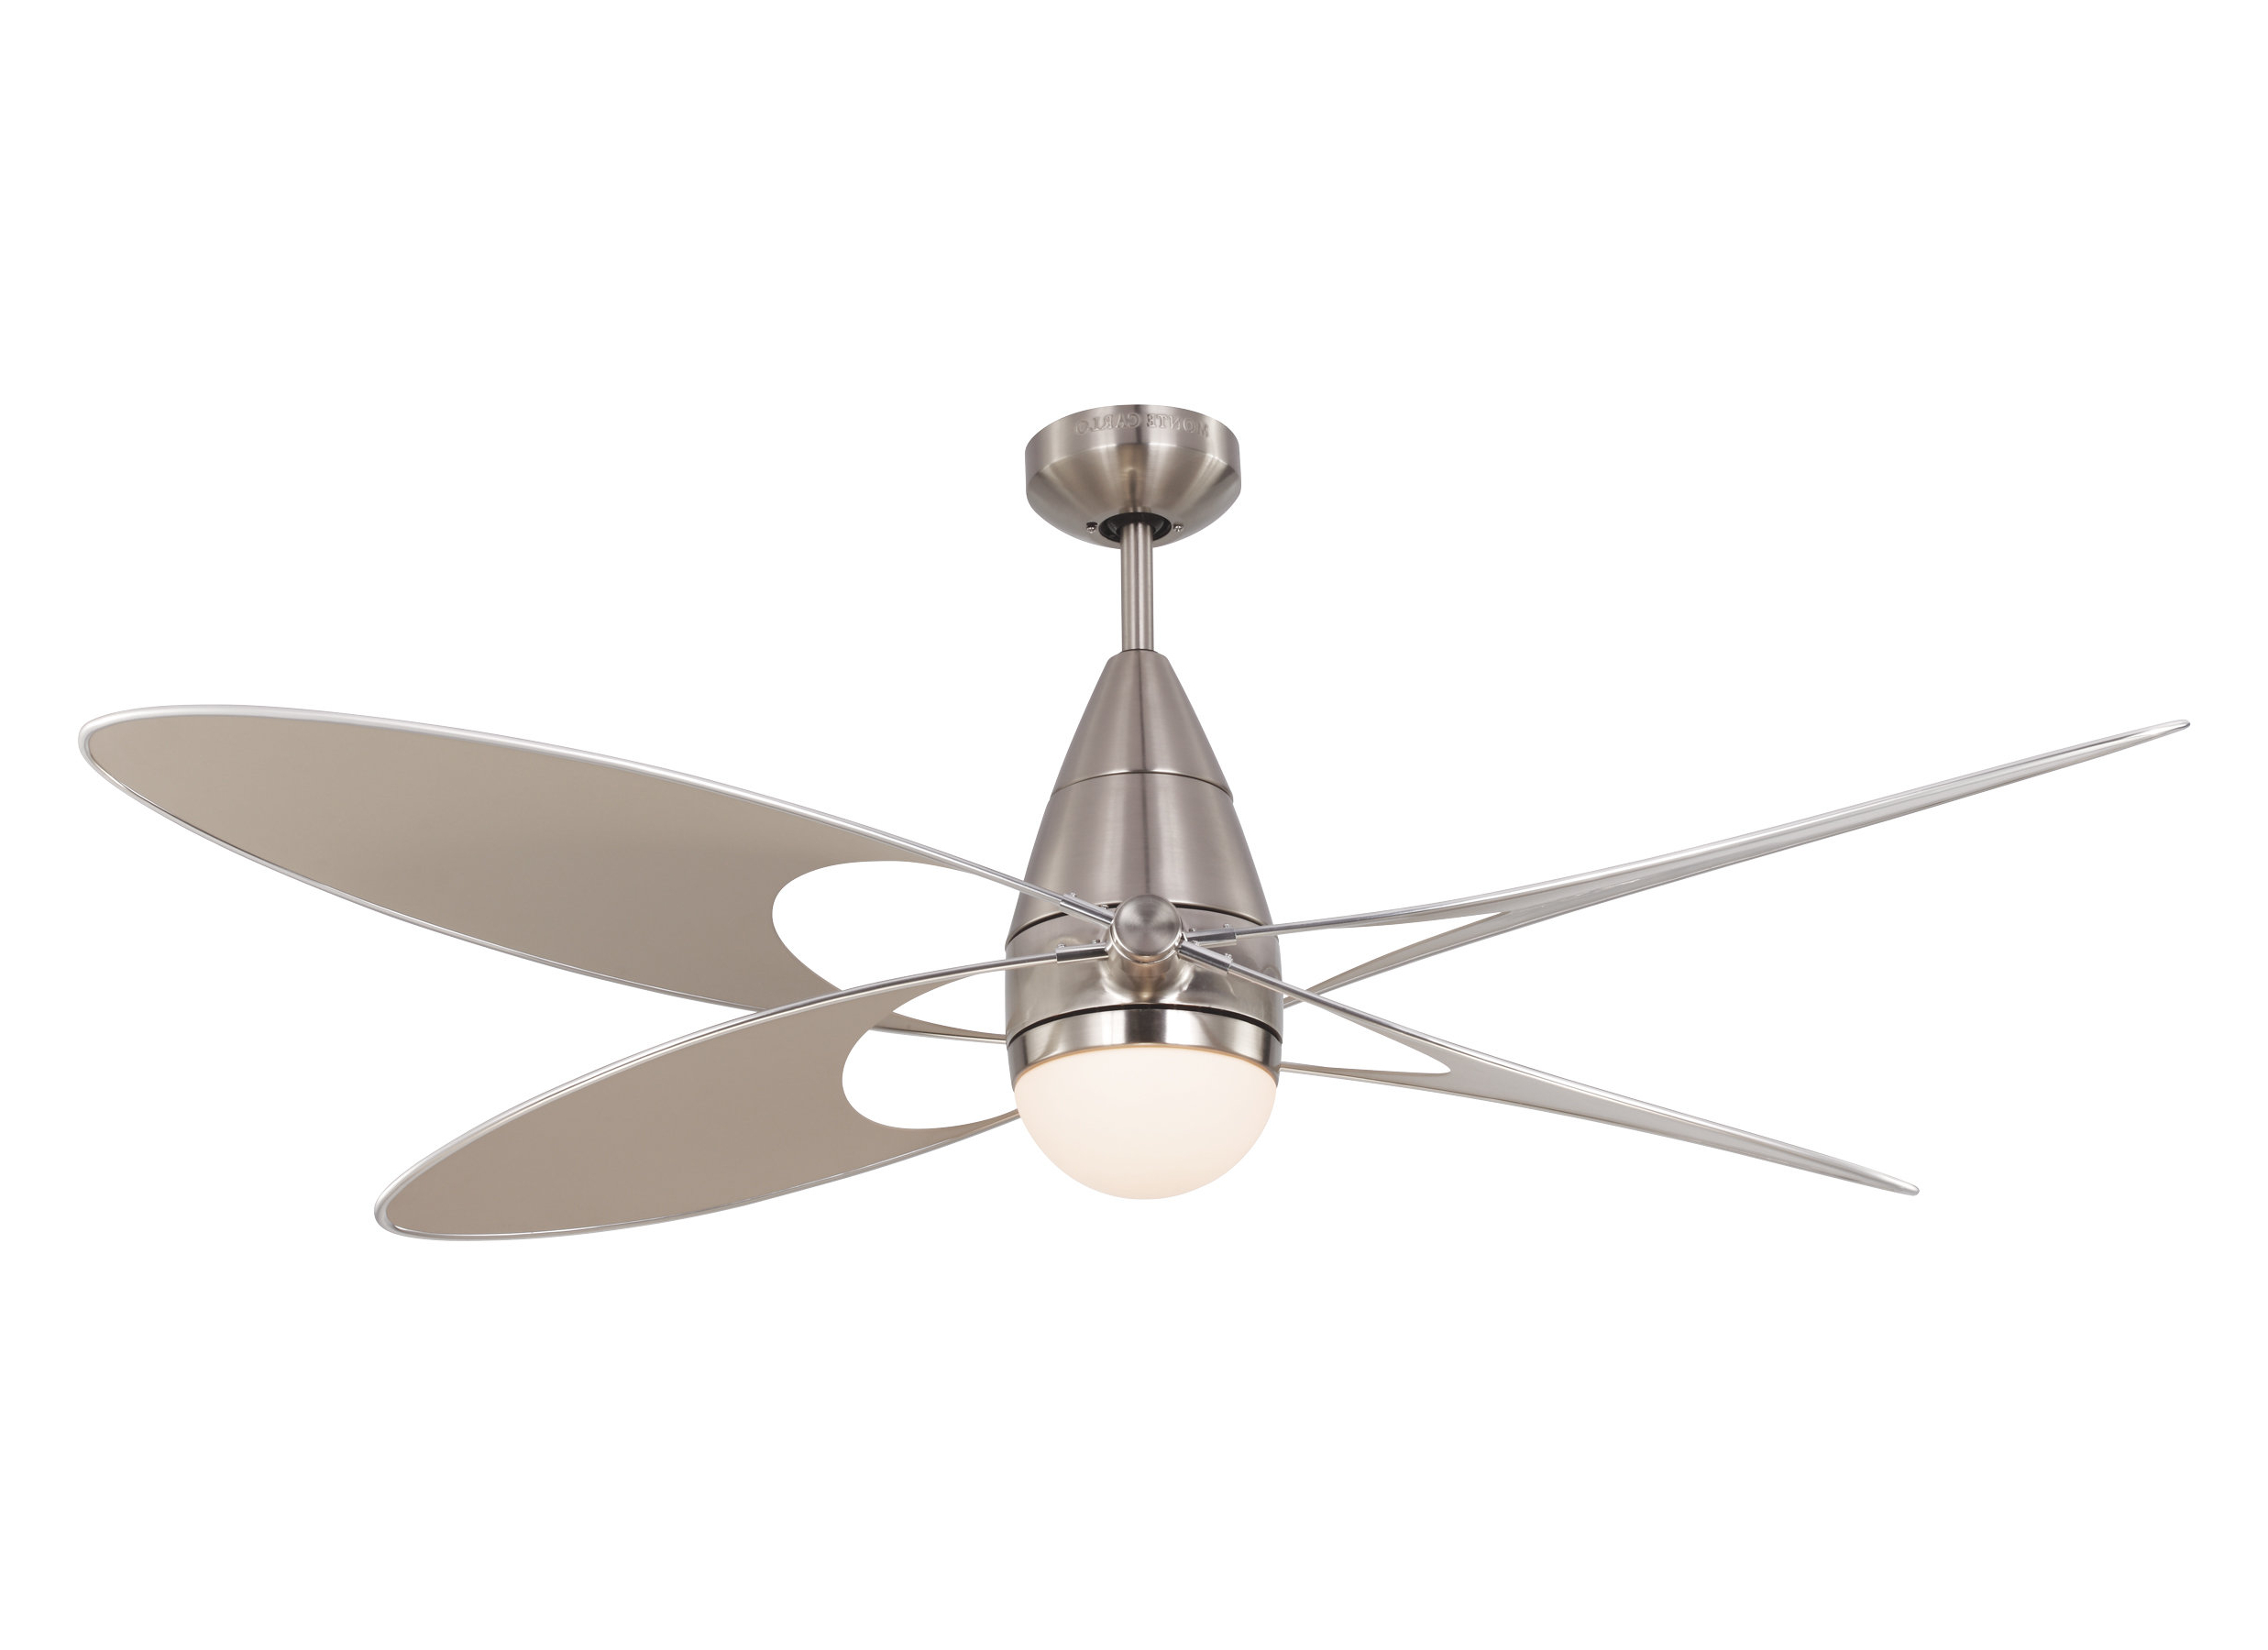 """Widely Used Rainman 5 Blade Outdoor Ceiling Fans Regarding 54"""" Clorinda Butterfly 4 Blade Outdoor Ceiling Fan With Remote (View 20 of 20)"""